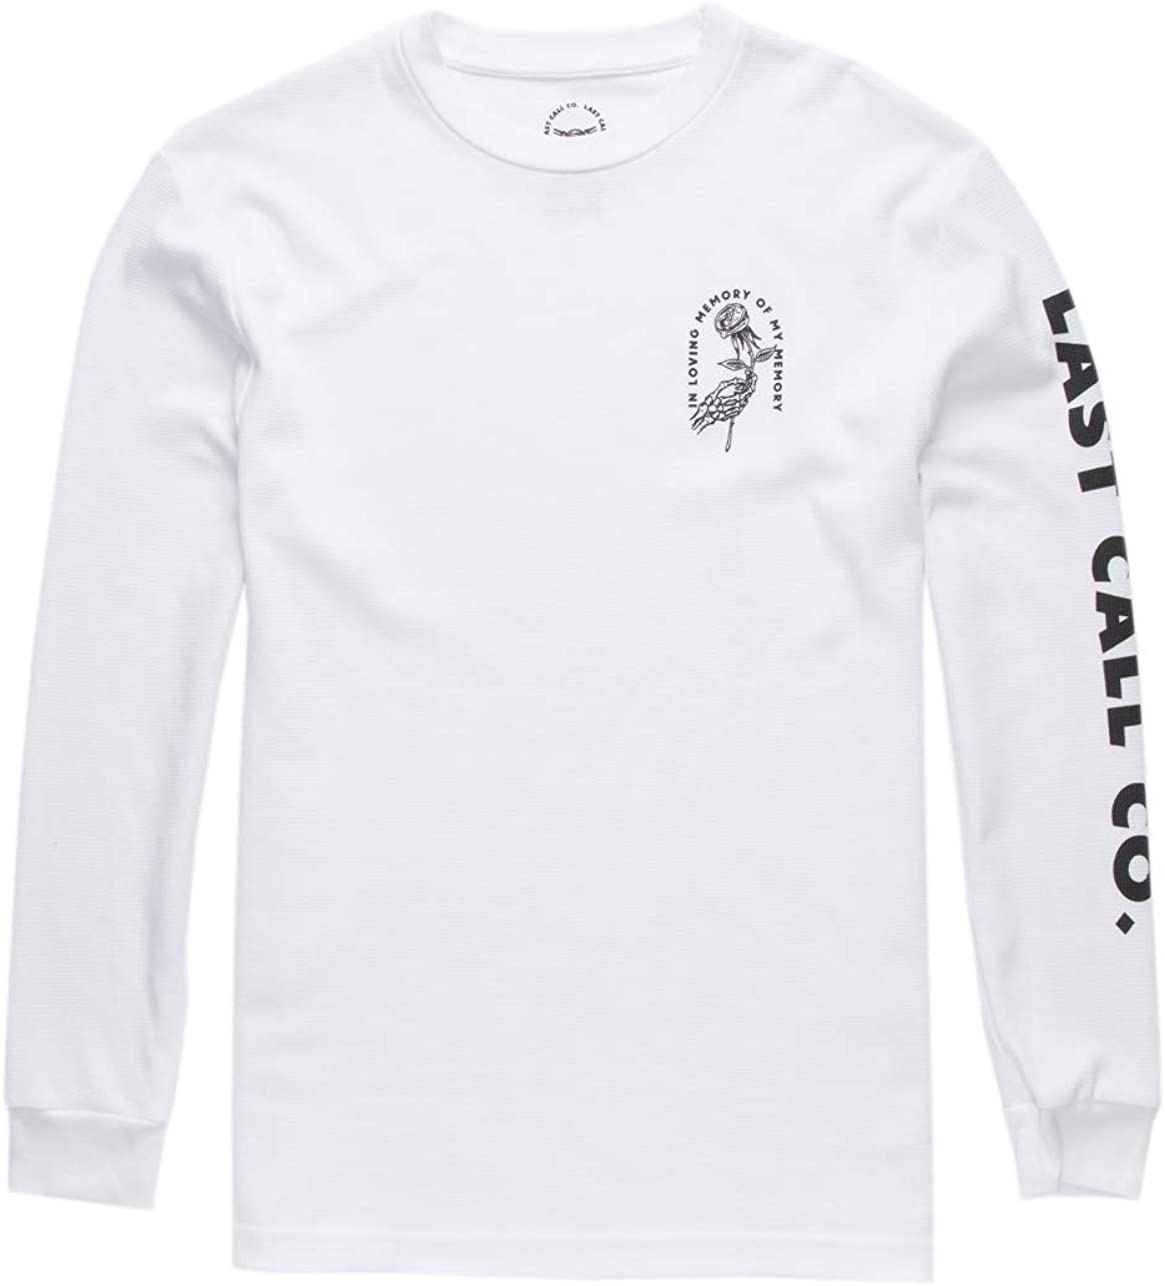 LAST CALL CO. in Memory Thermal